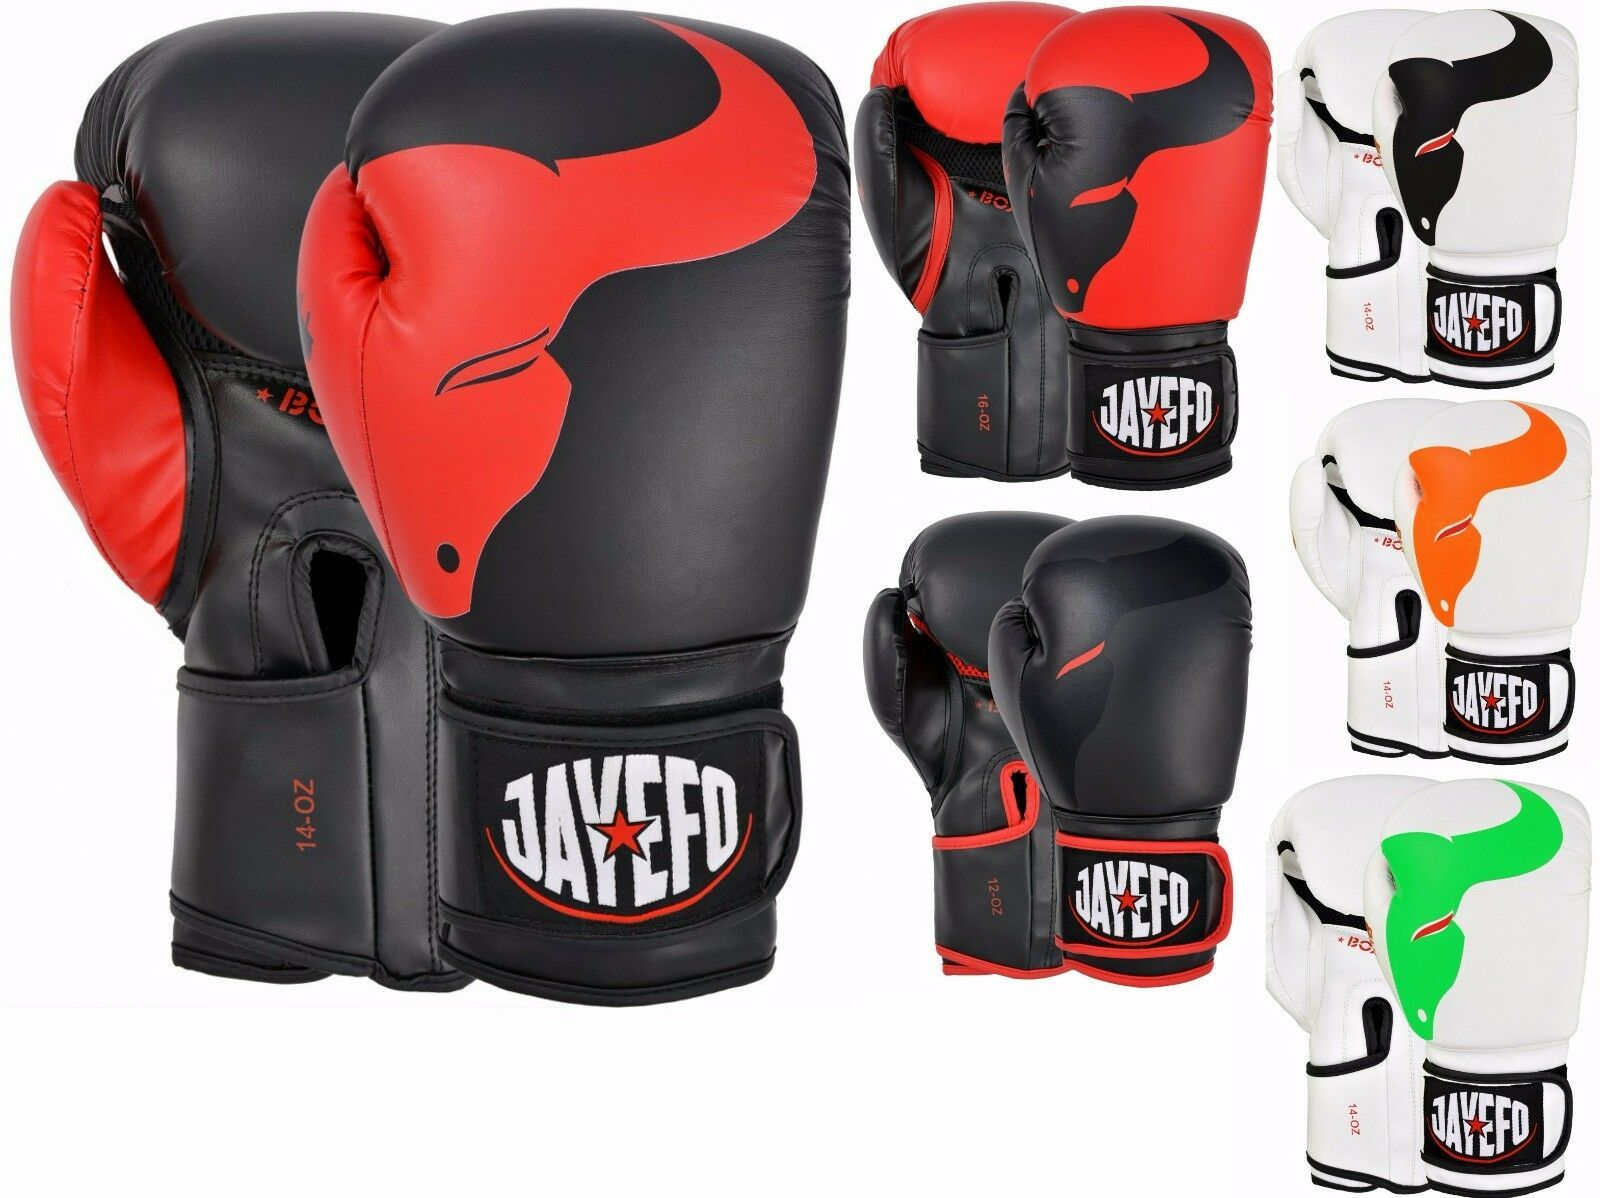 Boxing Punch Bag Mitts Kickboxing MMA Training Gloves  Leather Red Small